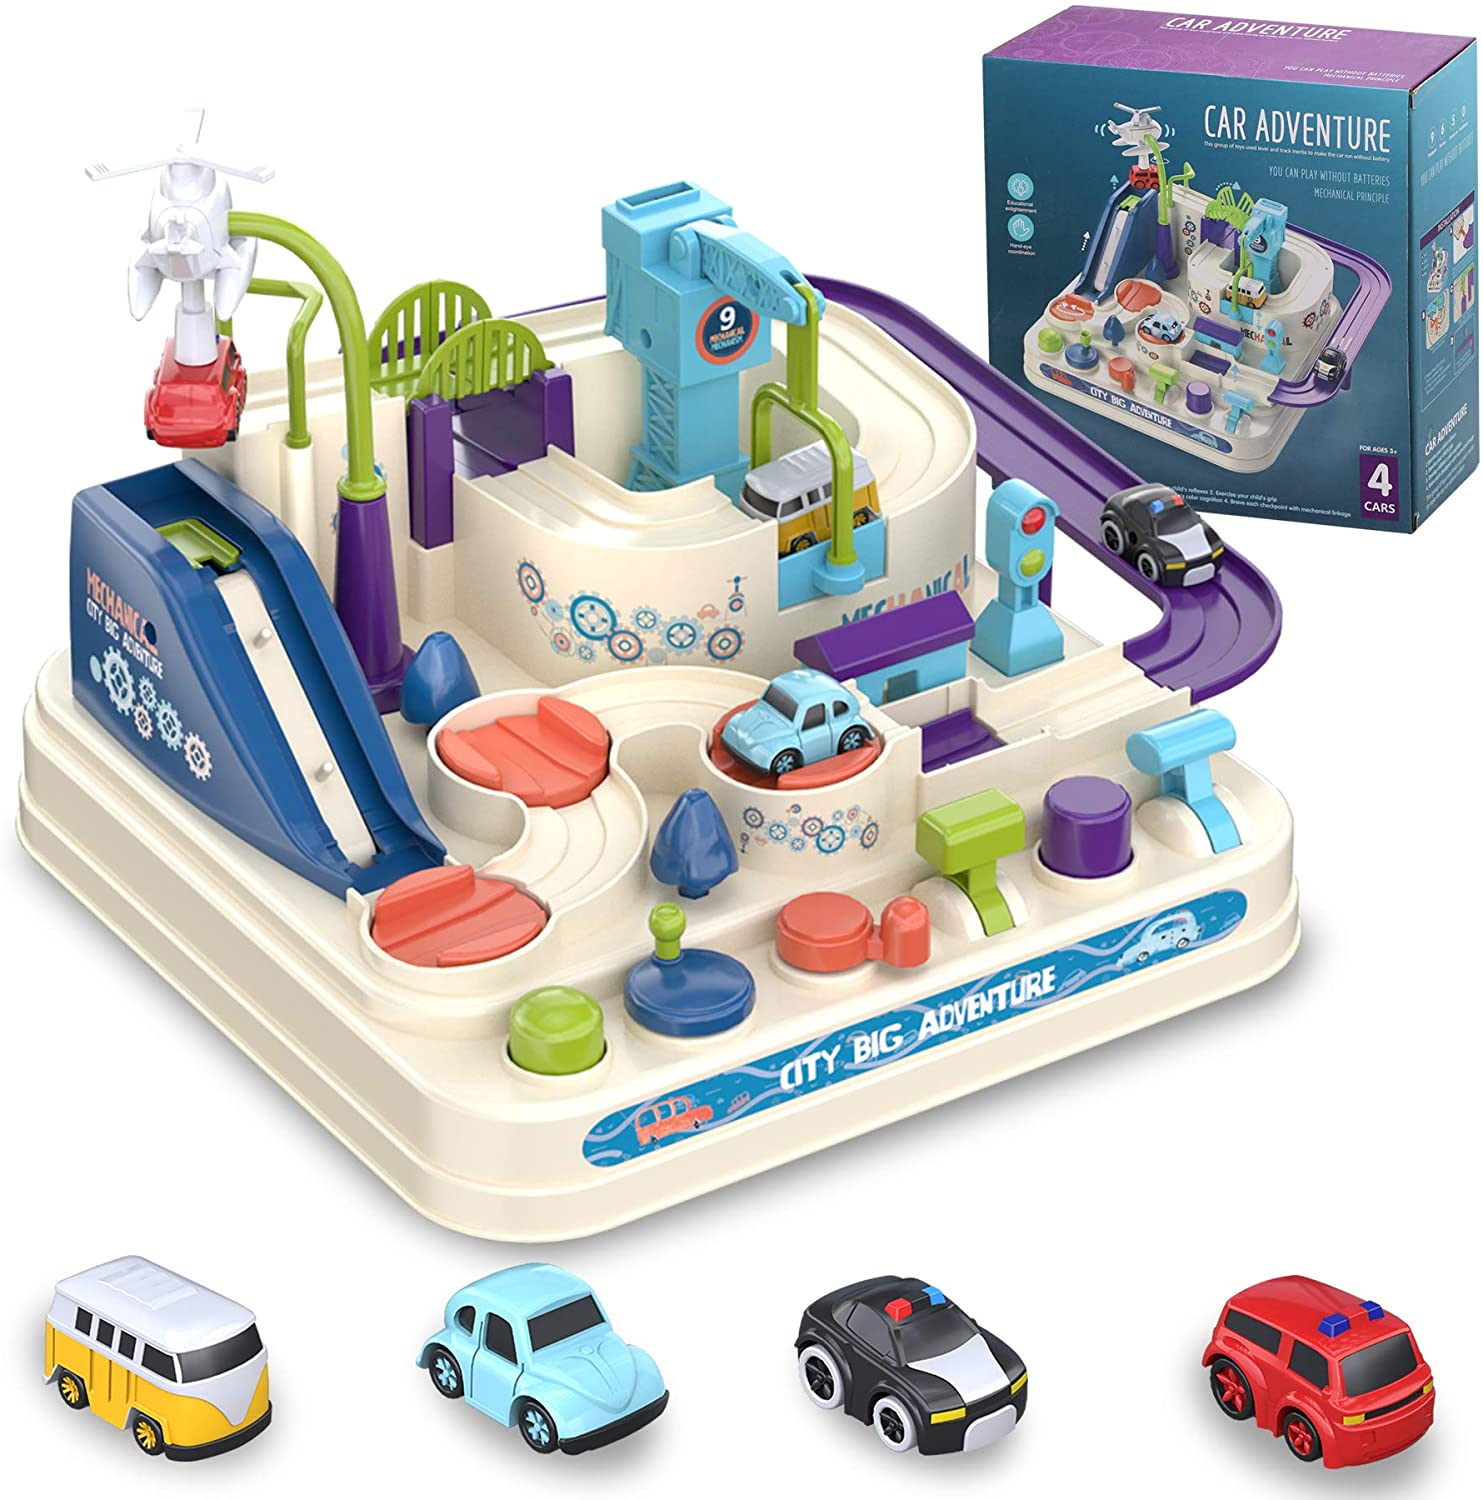 VARWANEO Car Adventure Toys for 3 4 5 6 7 8 Year Old Boys Girls, Race Tracks Toy for Boys with 4 Toy Vehicle, Preschool Educational Toy Car for 2 Year Old Boy, Interactive Classic Toys Vehicle Playset